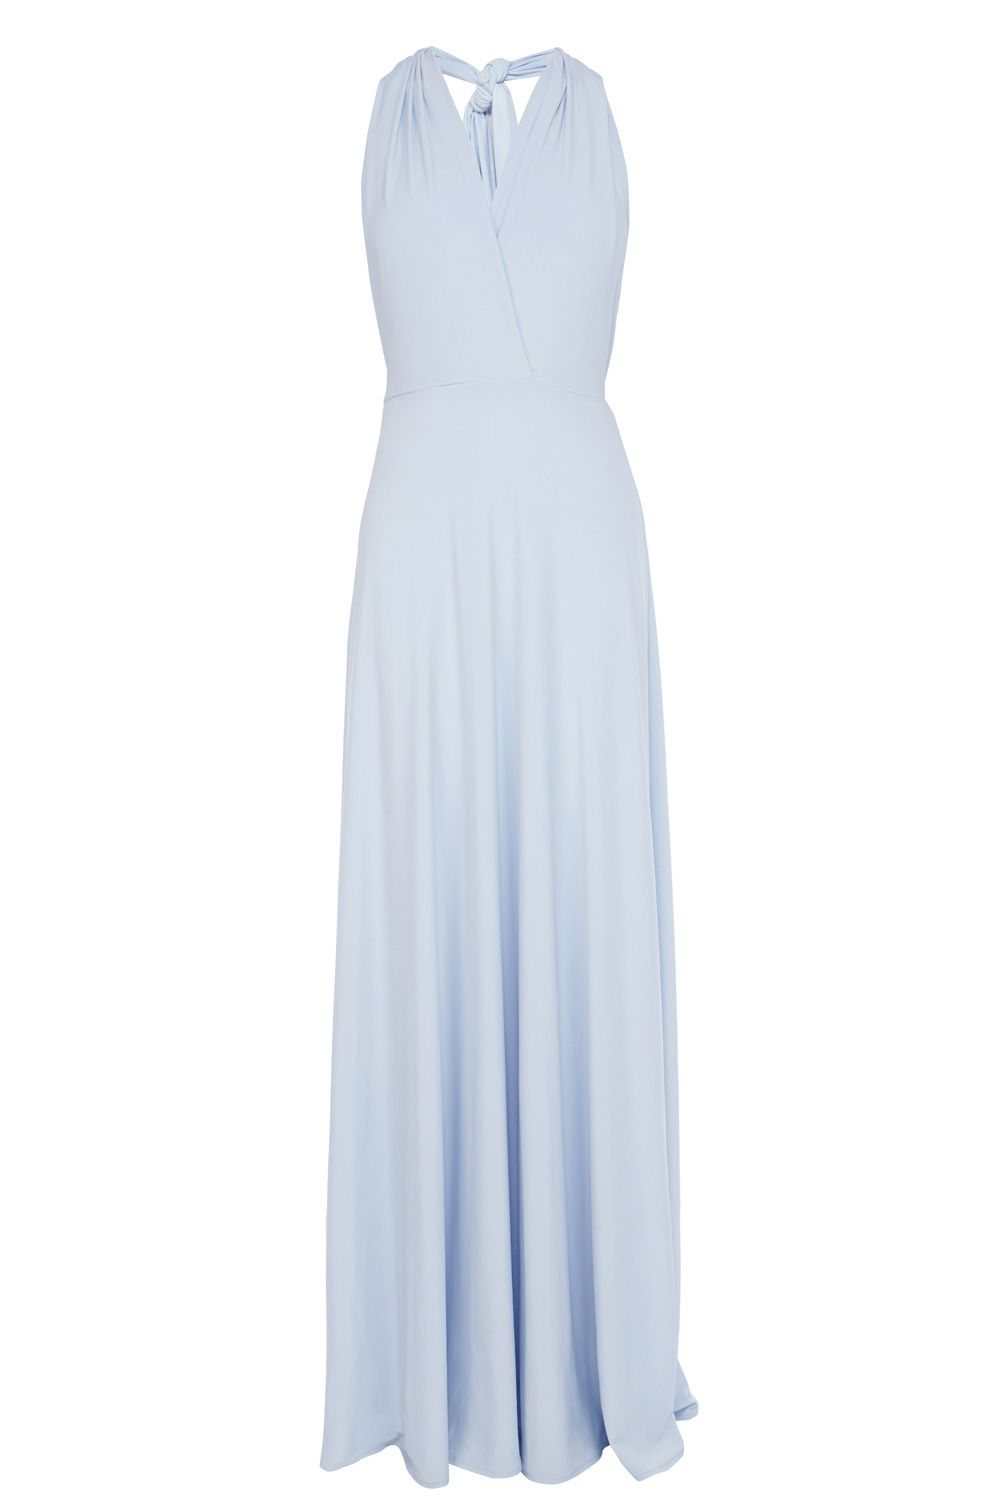 Corwin multi tie dress wedding party outfits pinterest fcp corwin multi tie dress ombrellifo Images